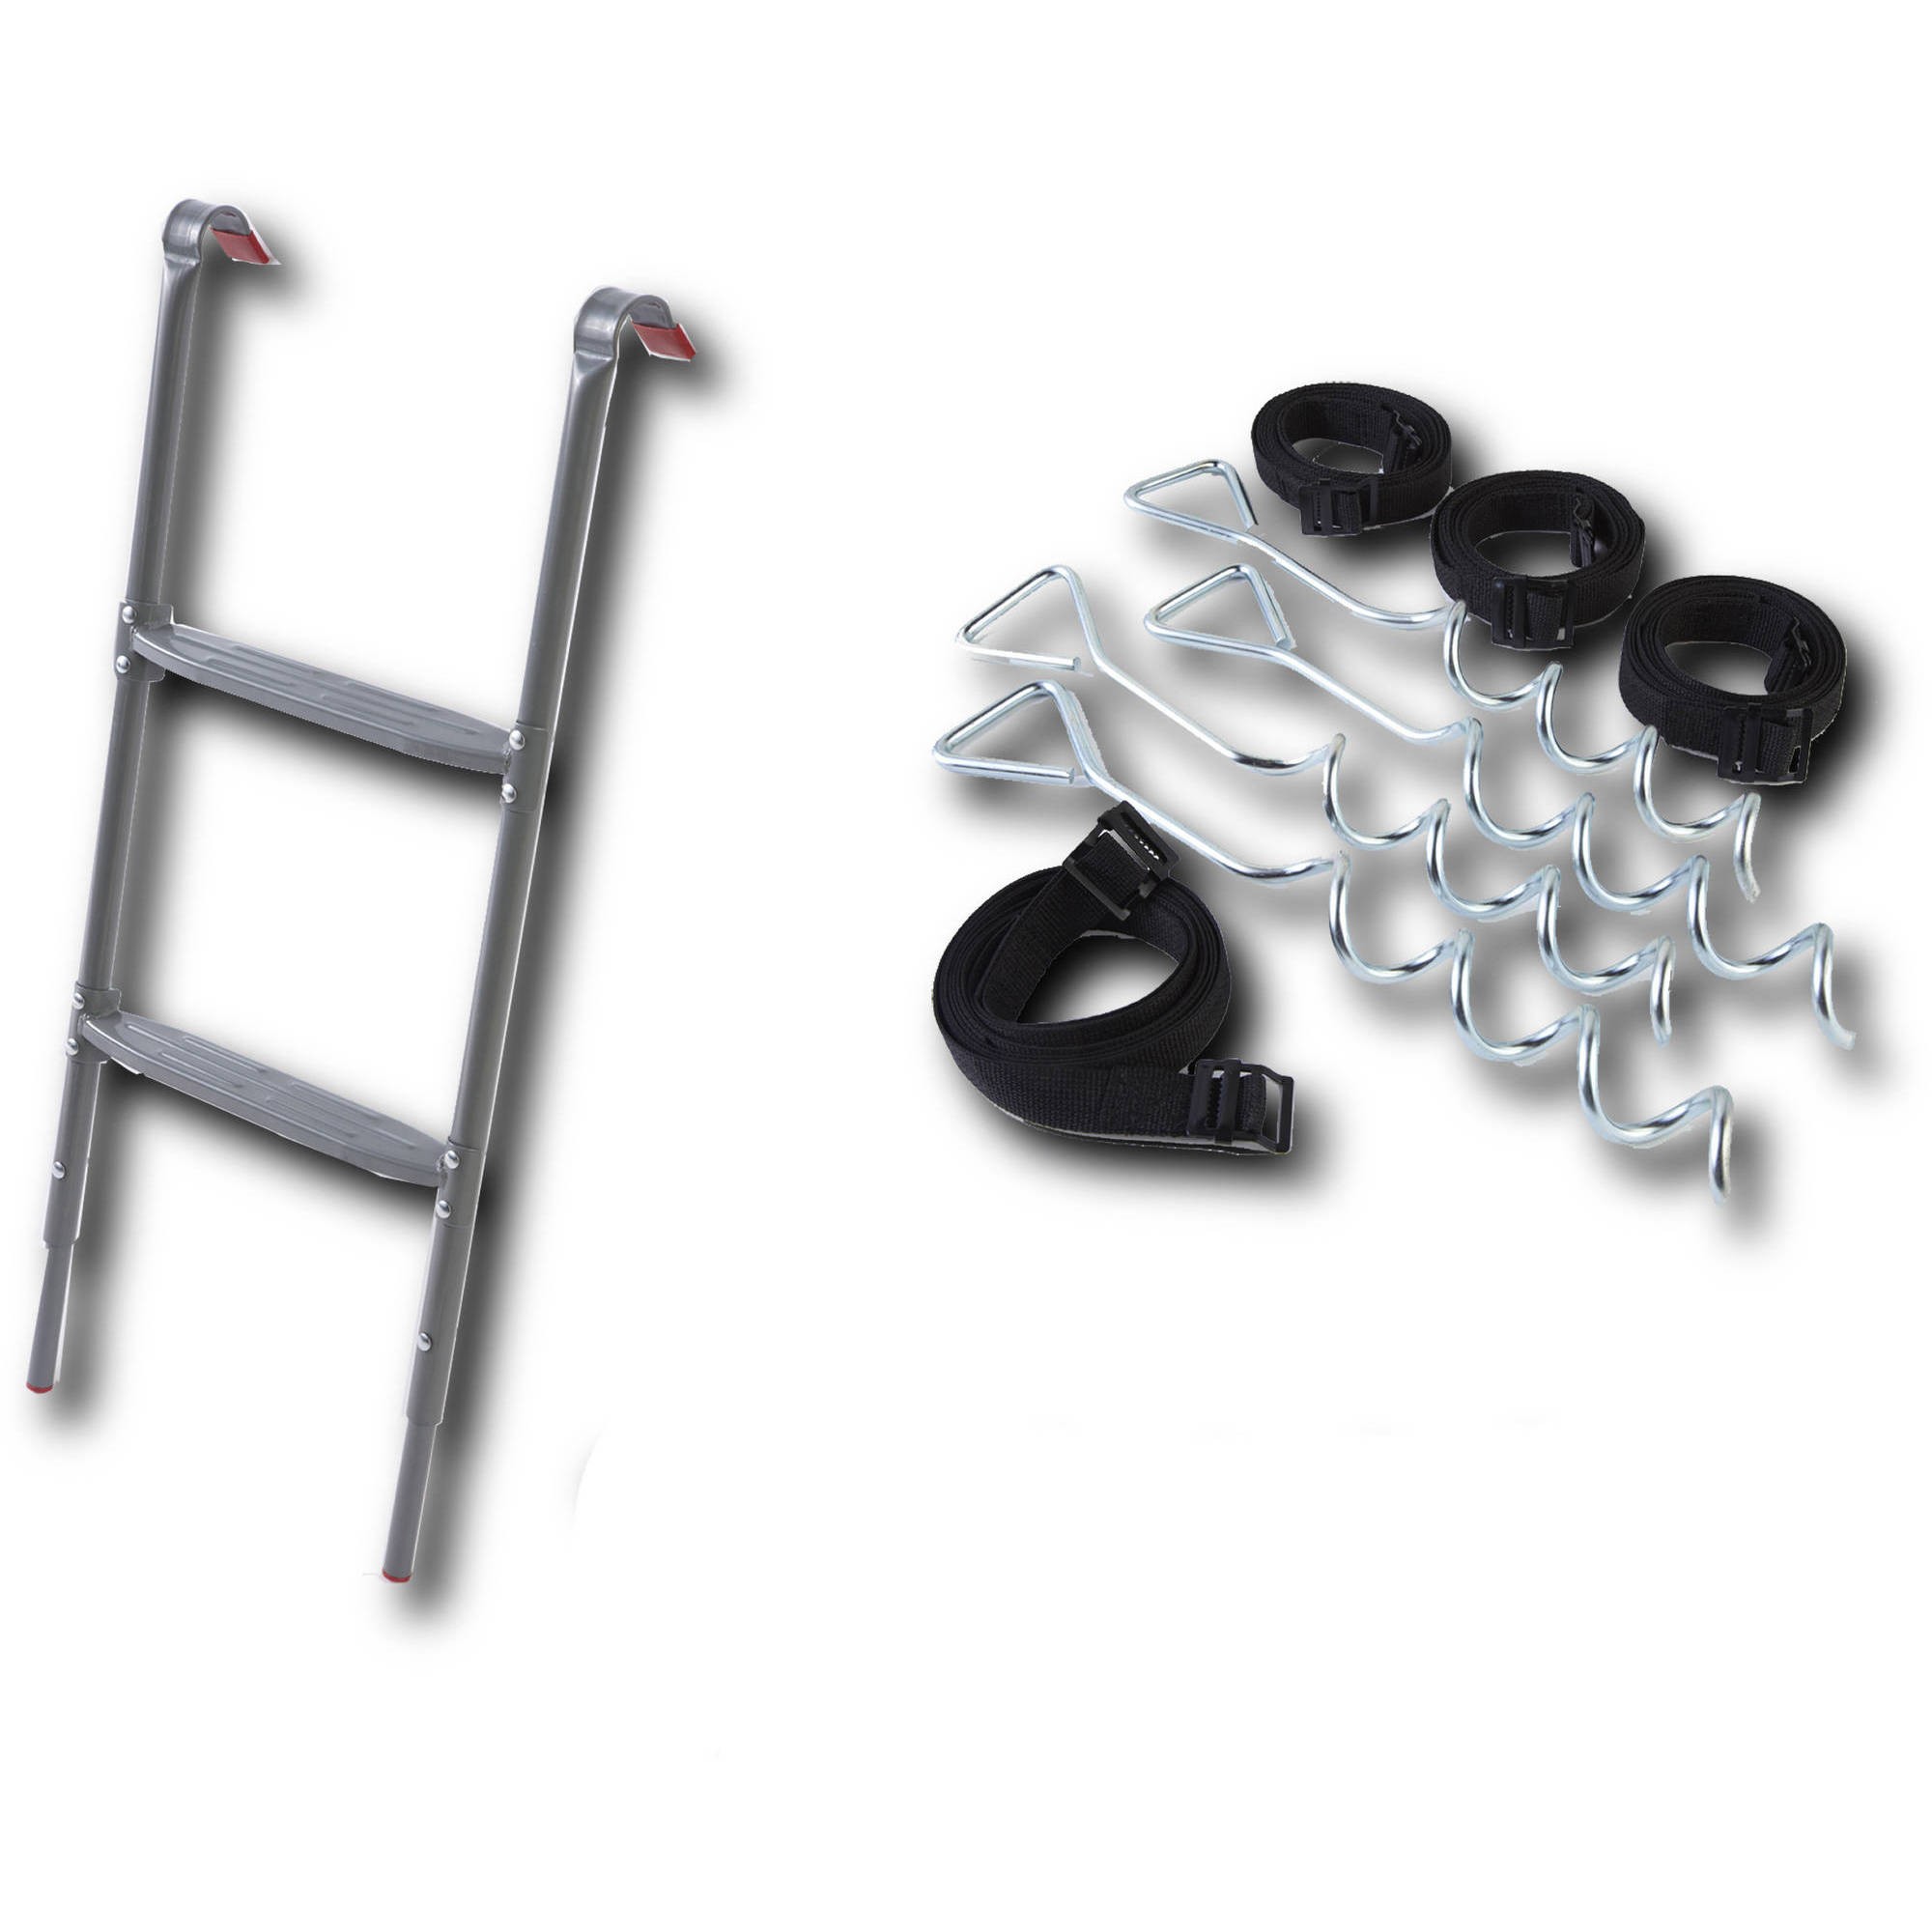 Jumpking Anchor and Ladder Kit